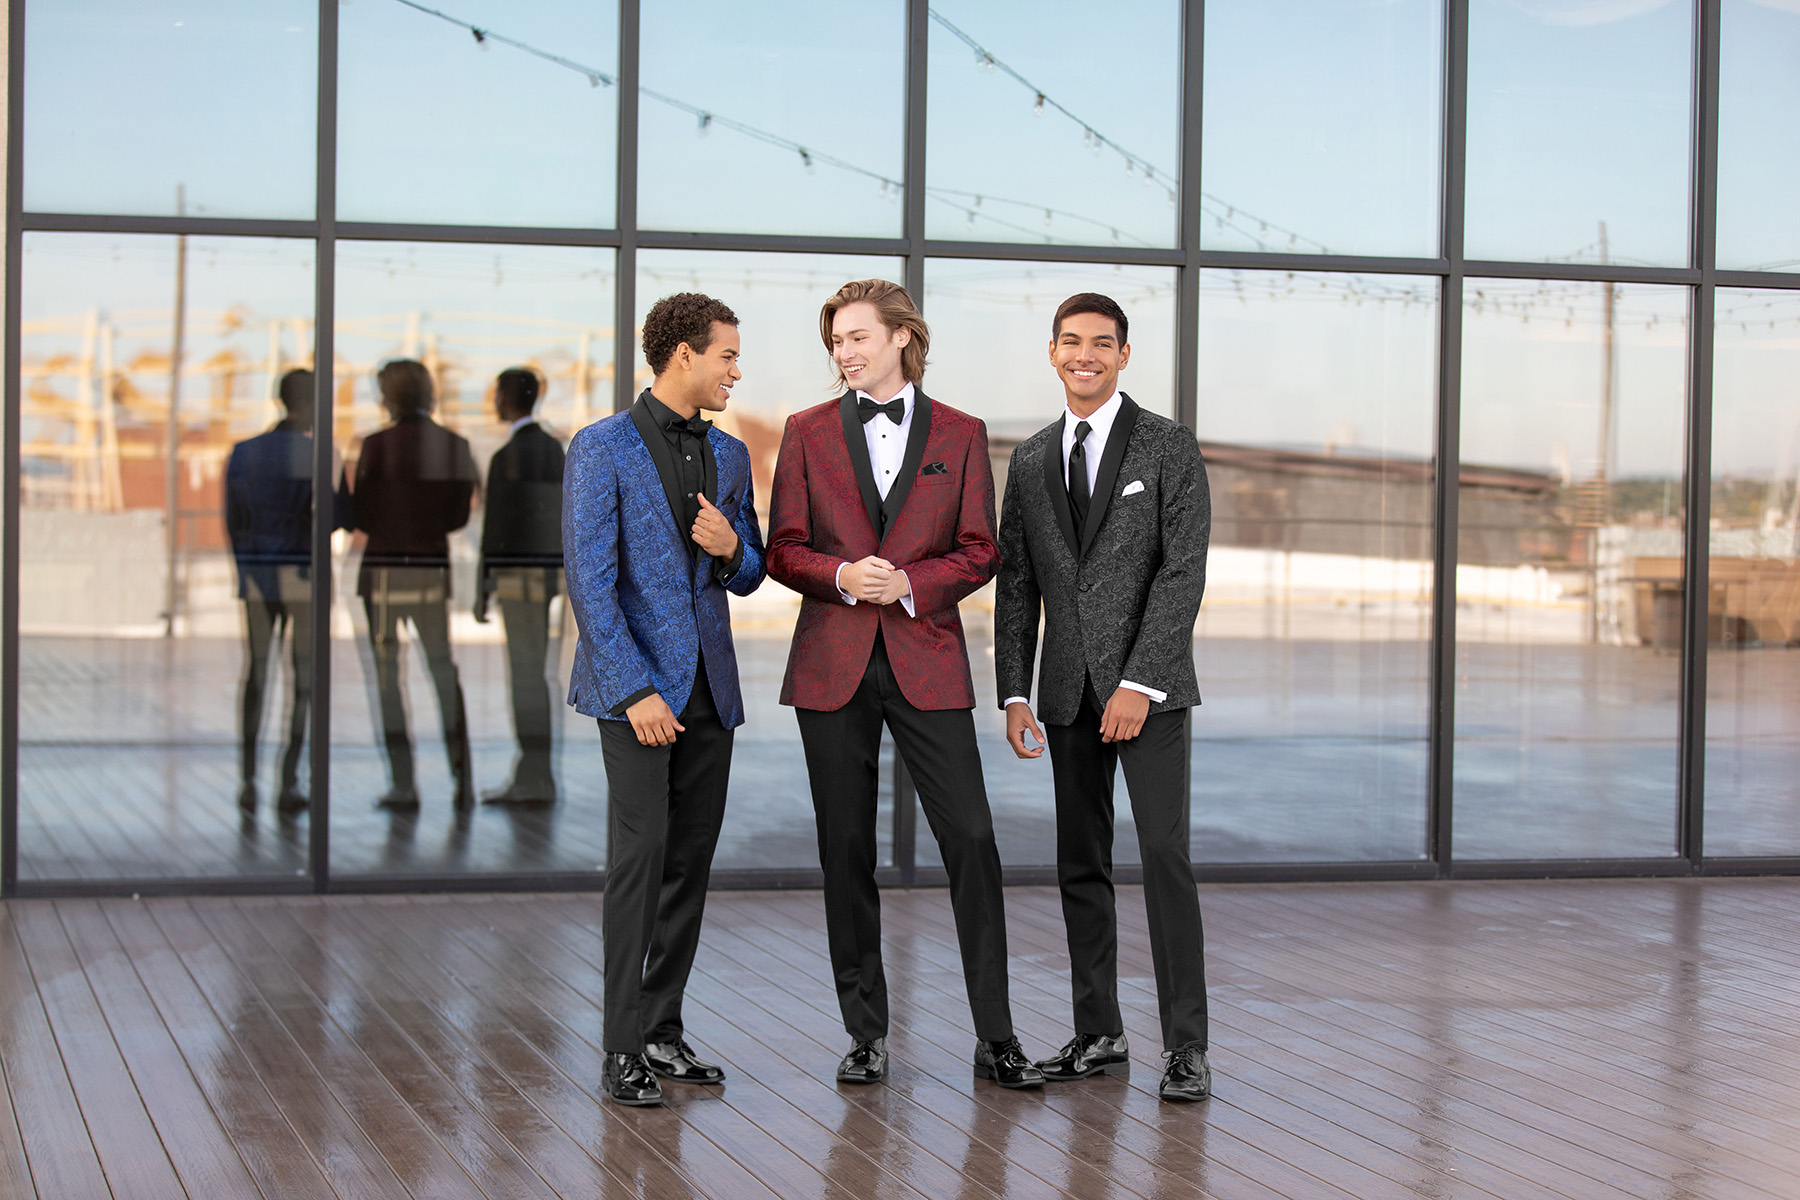 Prom Special: Early Booking! - When you order your Prom Tuxedo between March 1st and March 31st, receive an additional $10 off of your rental.